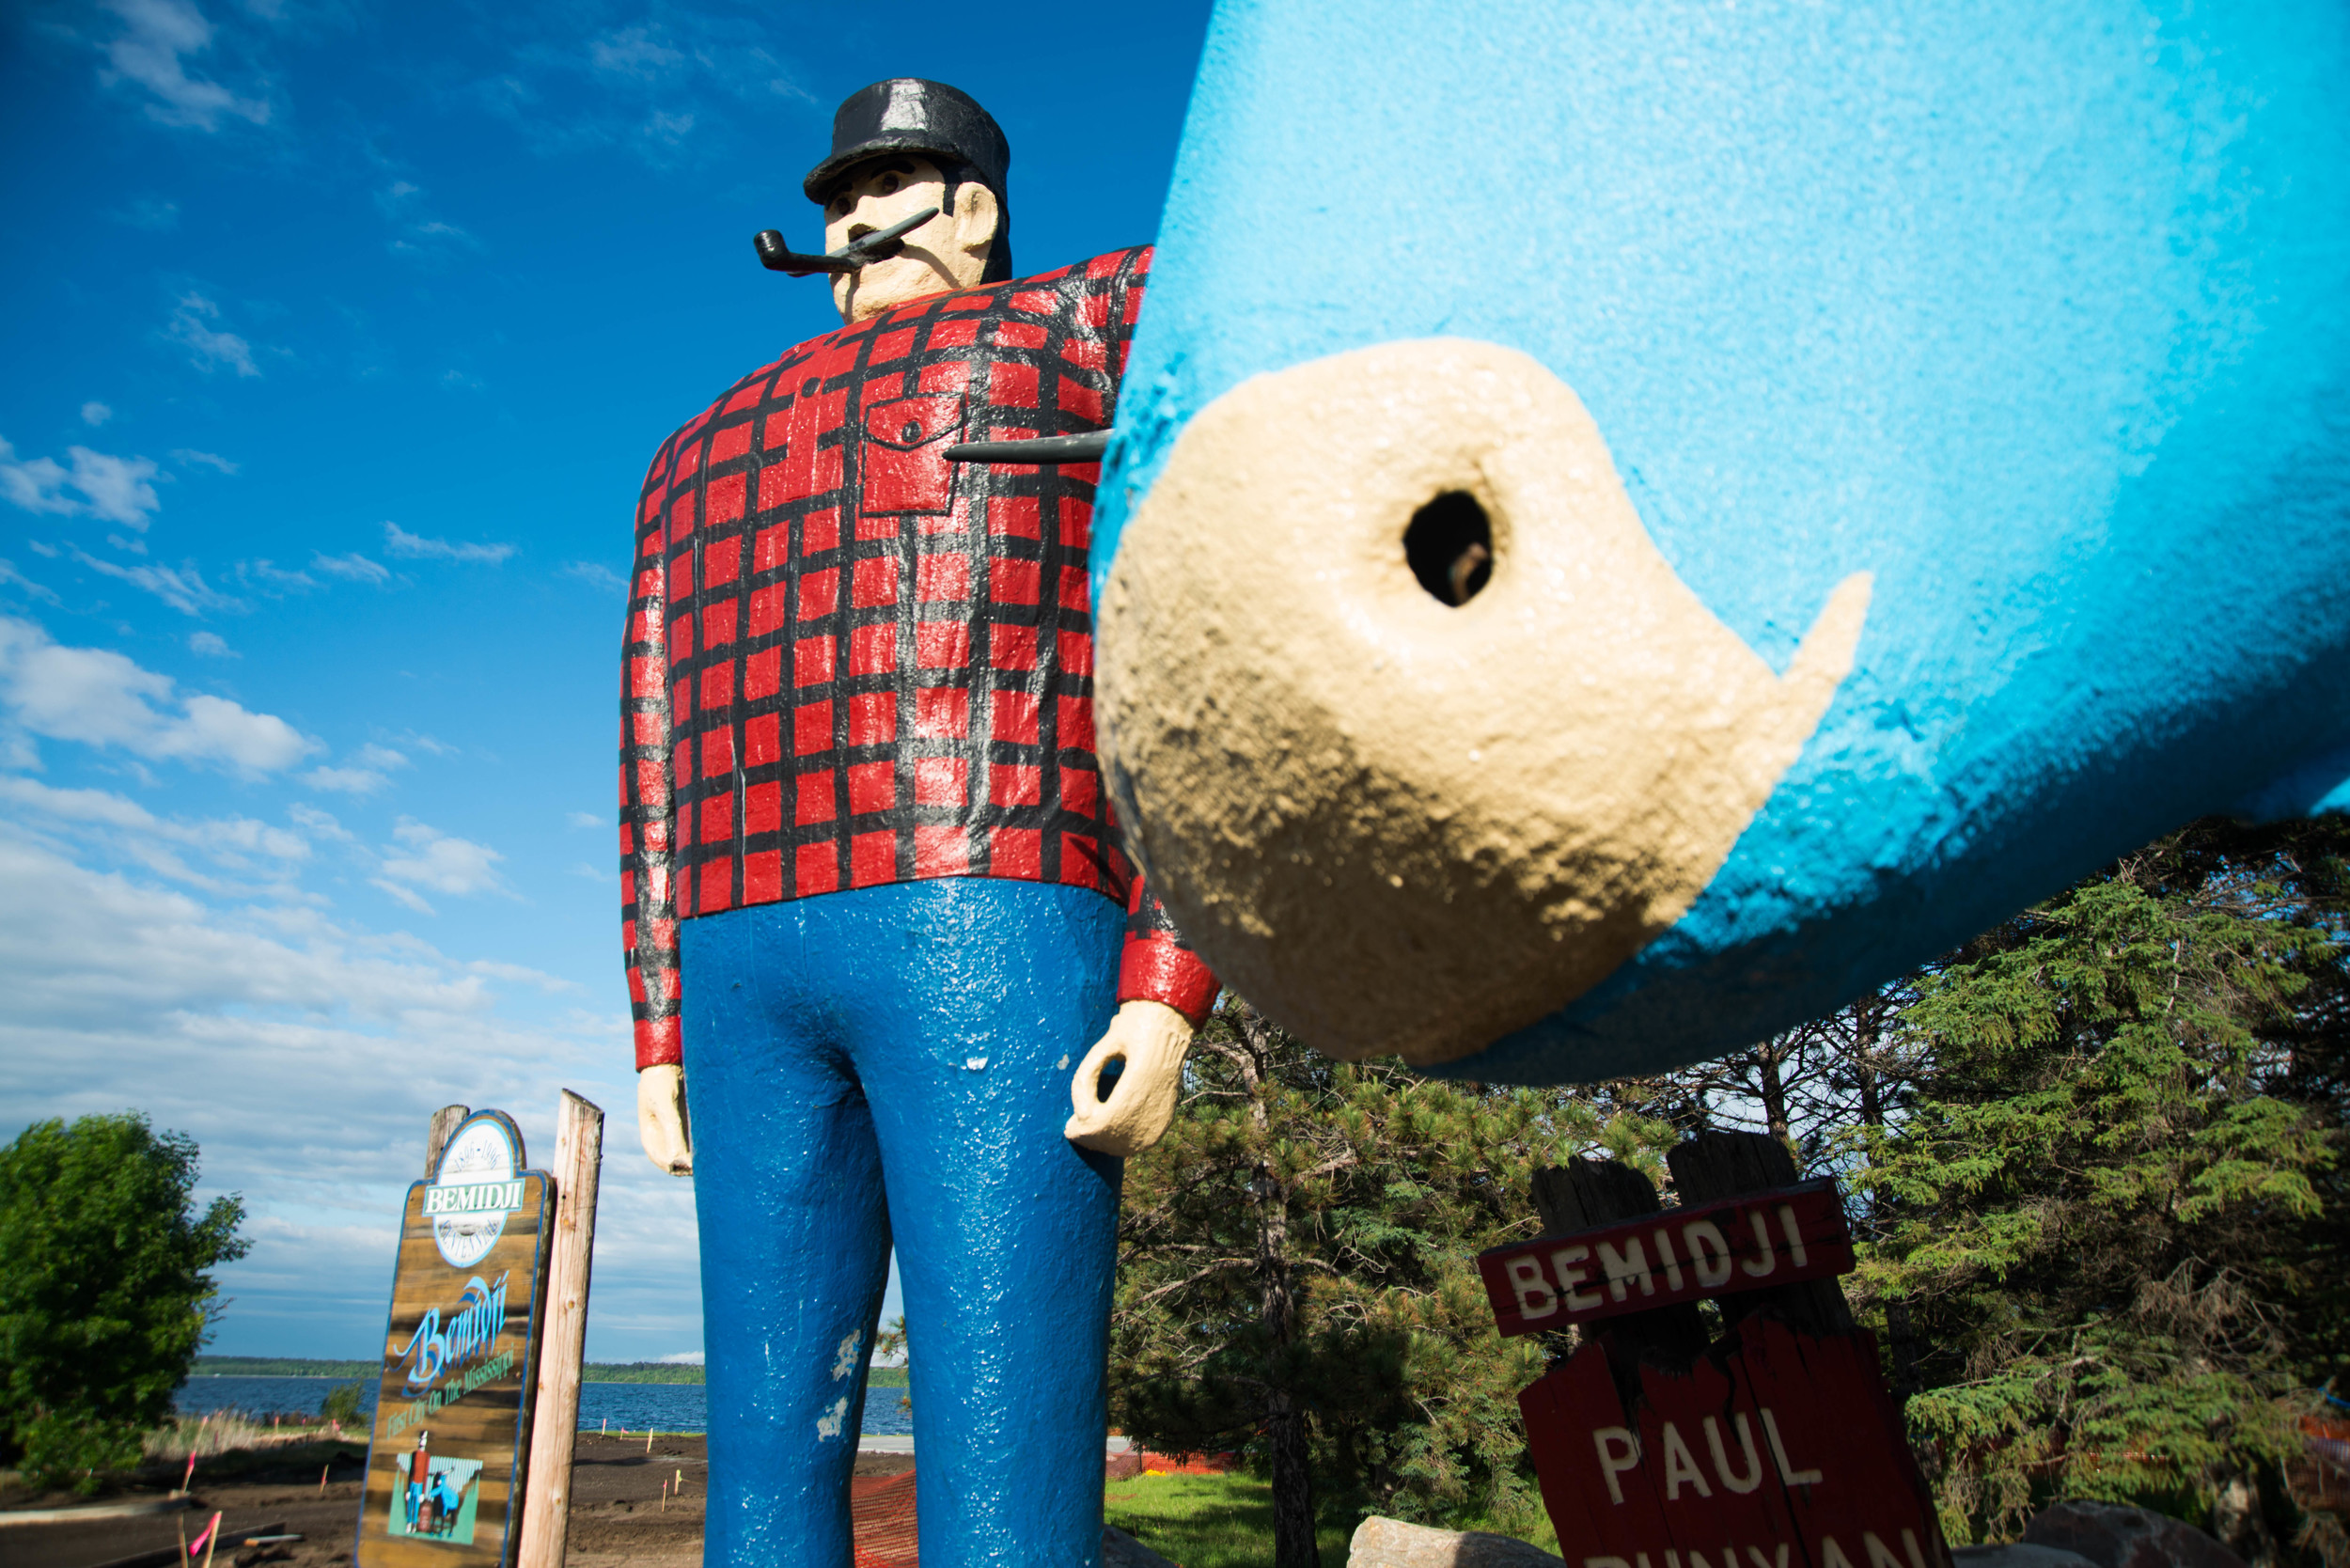 Bemidji, Minnesota- Home to a beautiful lake portion of the Mississippi as well as some very large, very old statues of Paul Bunyan and Babe the Blue Ox. Approximately 30 minutes before this photo was made it was a hilariously stormy day. Classic Mississippi River.